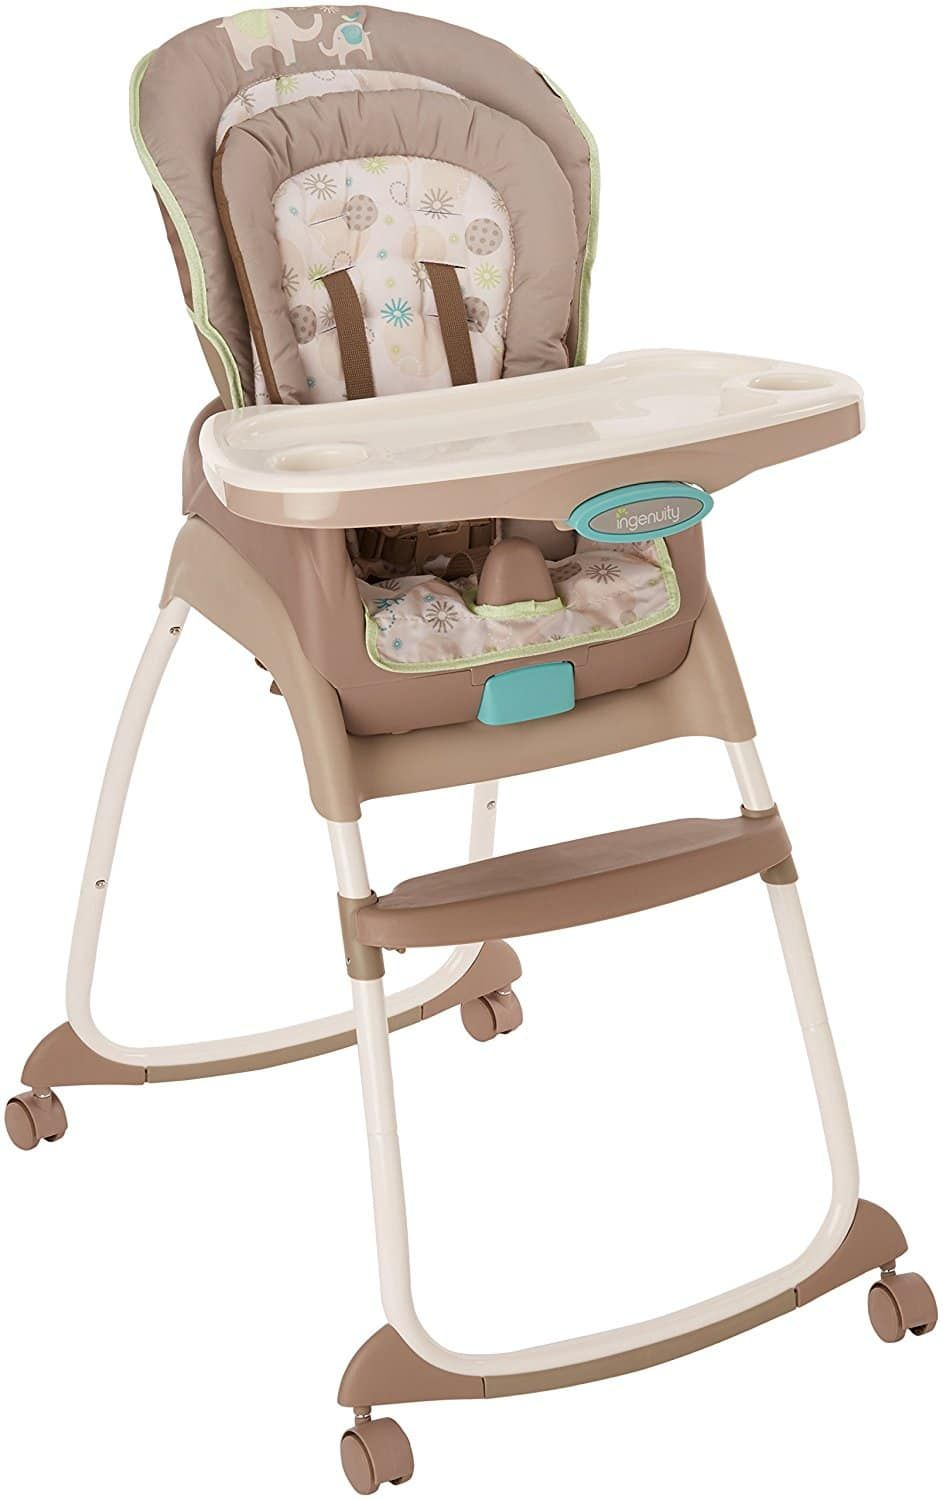 best high chair for baby folding quad with canopy top 10 chairs in 2018 ingenuity trio deluxe 3 1 sahara burst